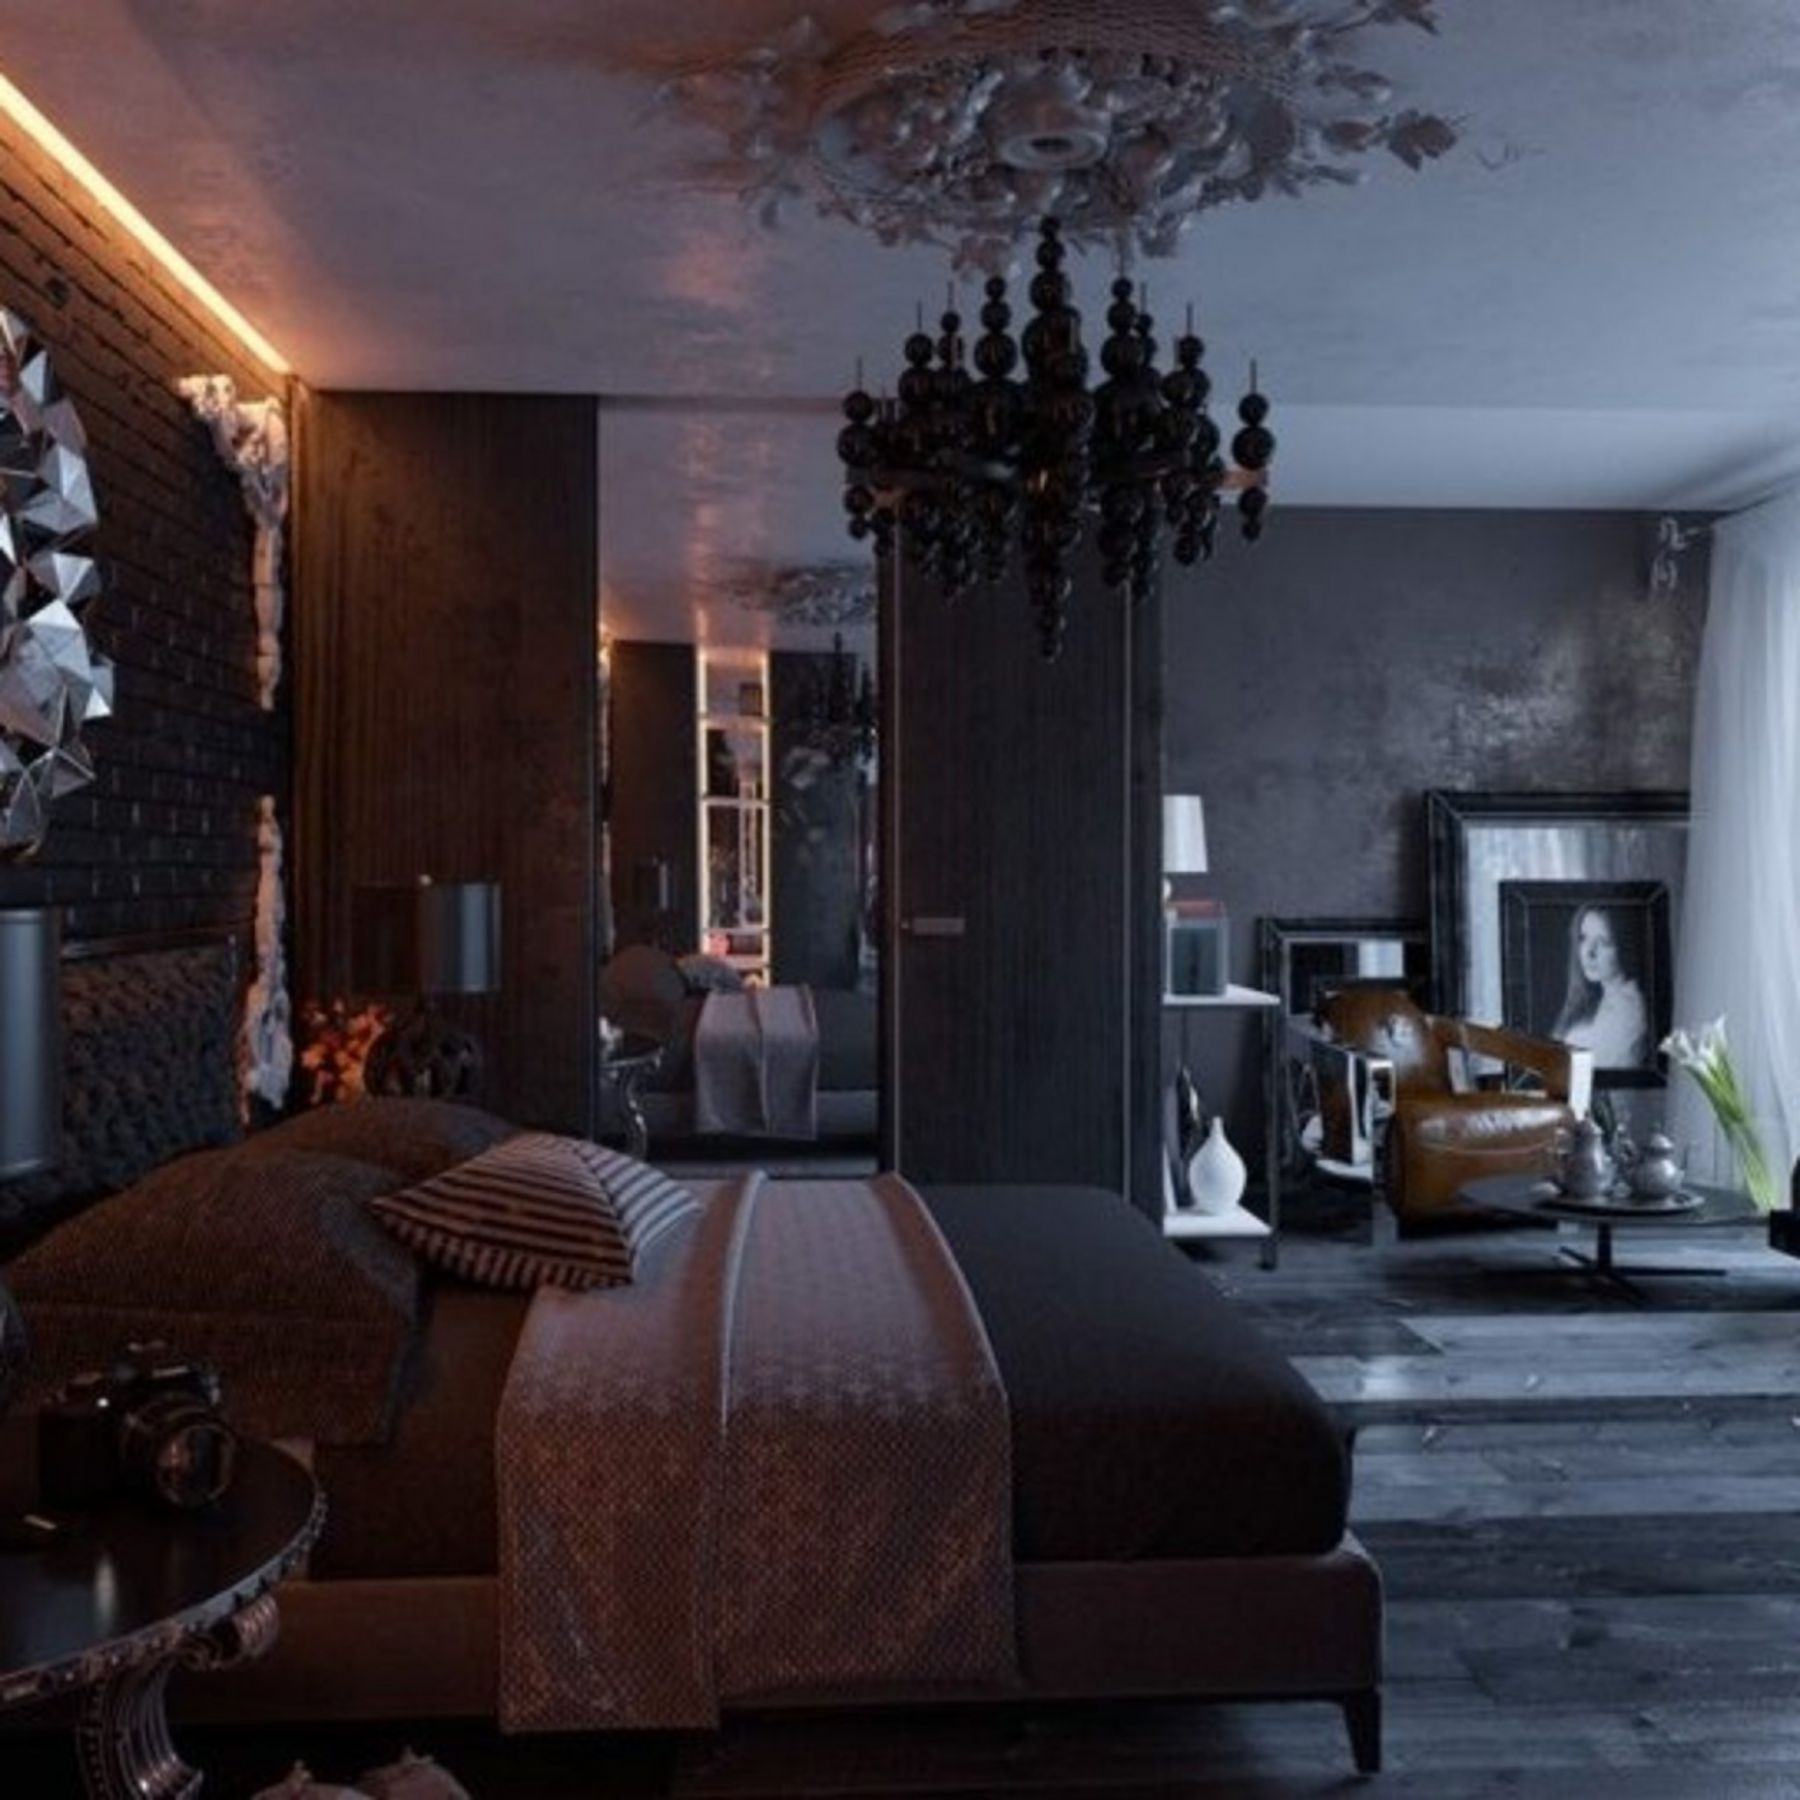 10 Elegant Gothic Bedroom Design Ideas For Your Best Bedroom